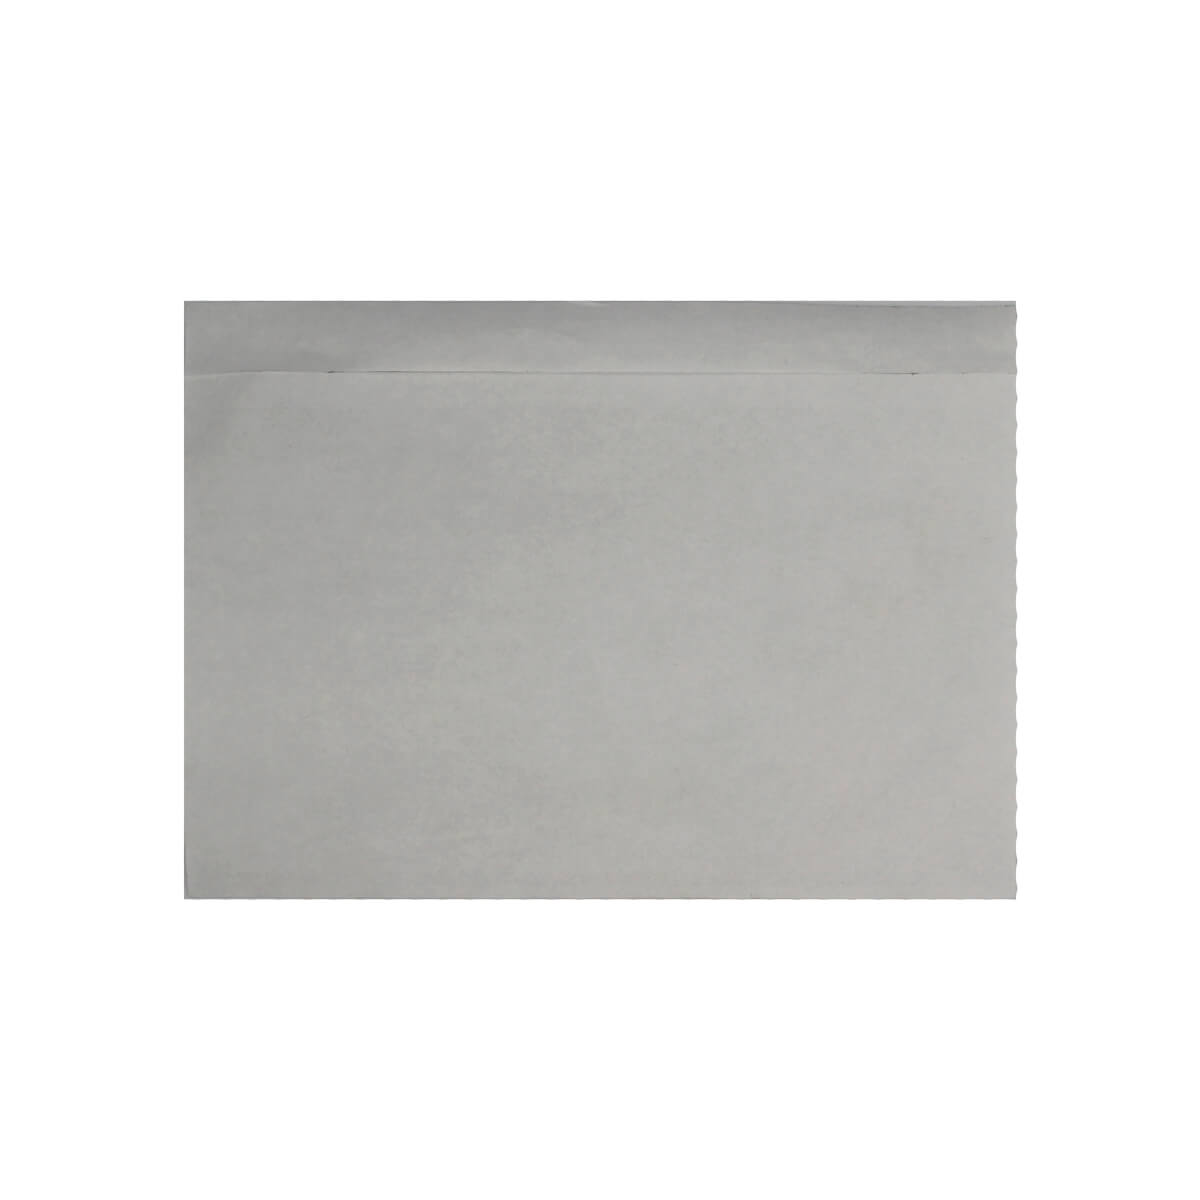 315 x 235mm CLEAR DOCUMENTS ENCLOSED WALLETS